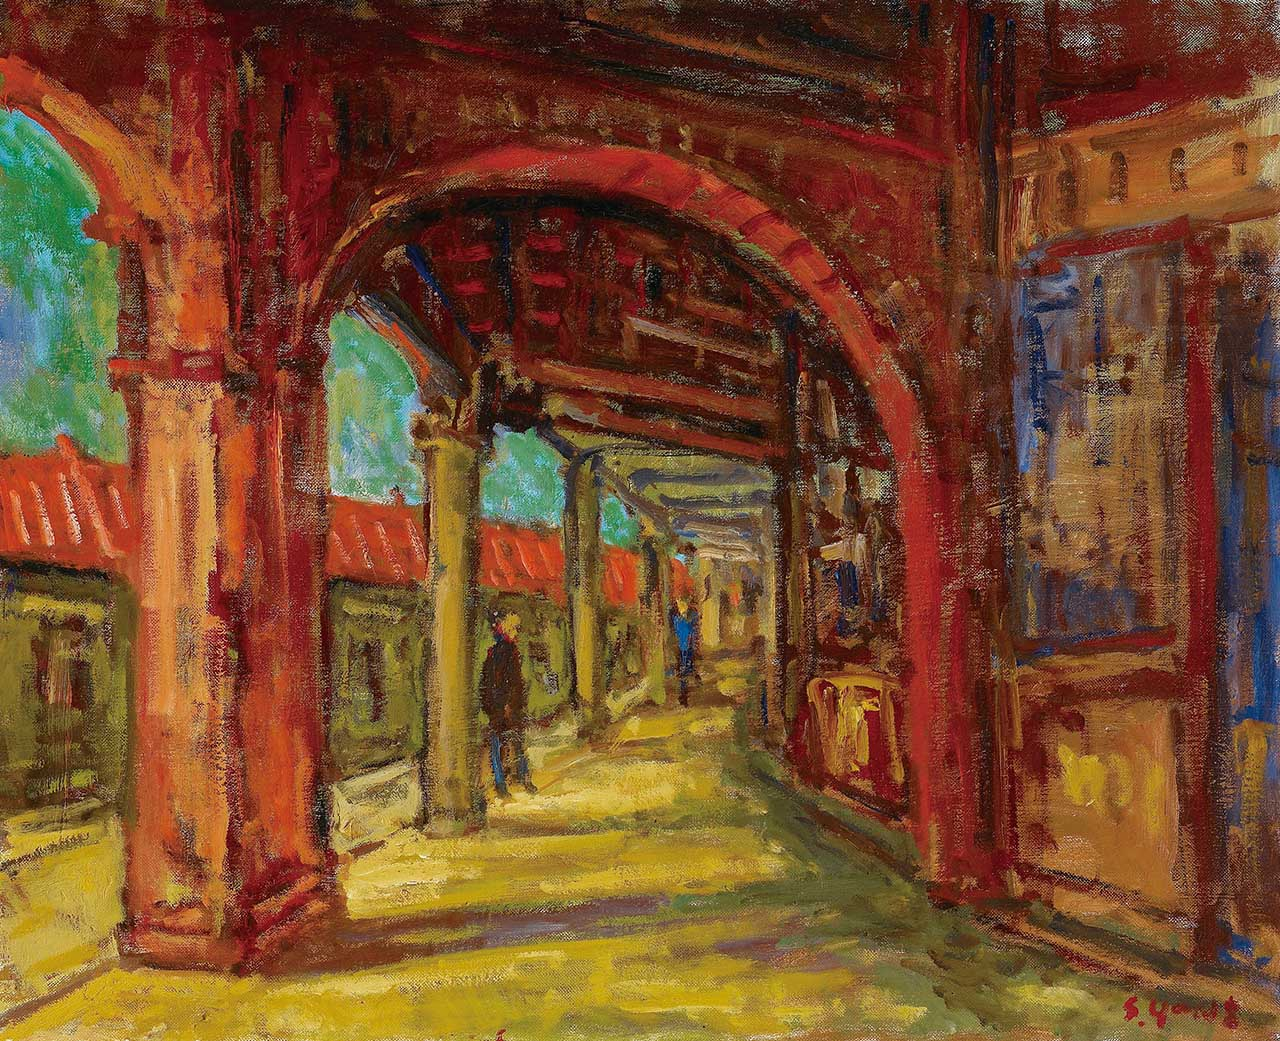 Jinshan Old Street Oil on canvas 65x80 cm